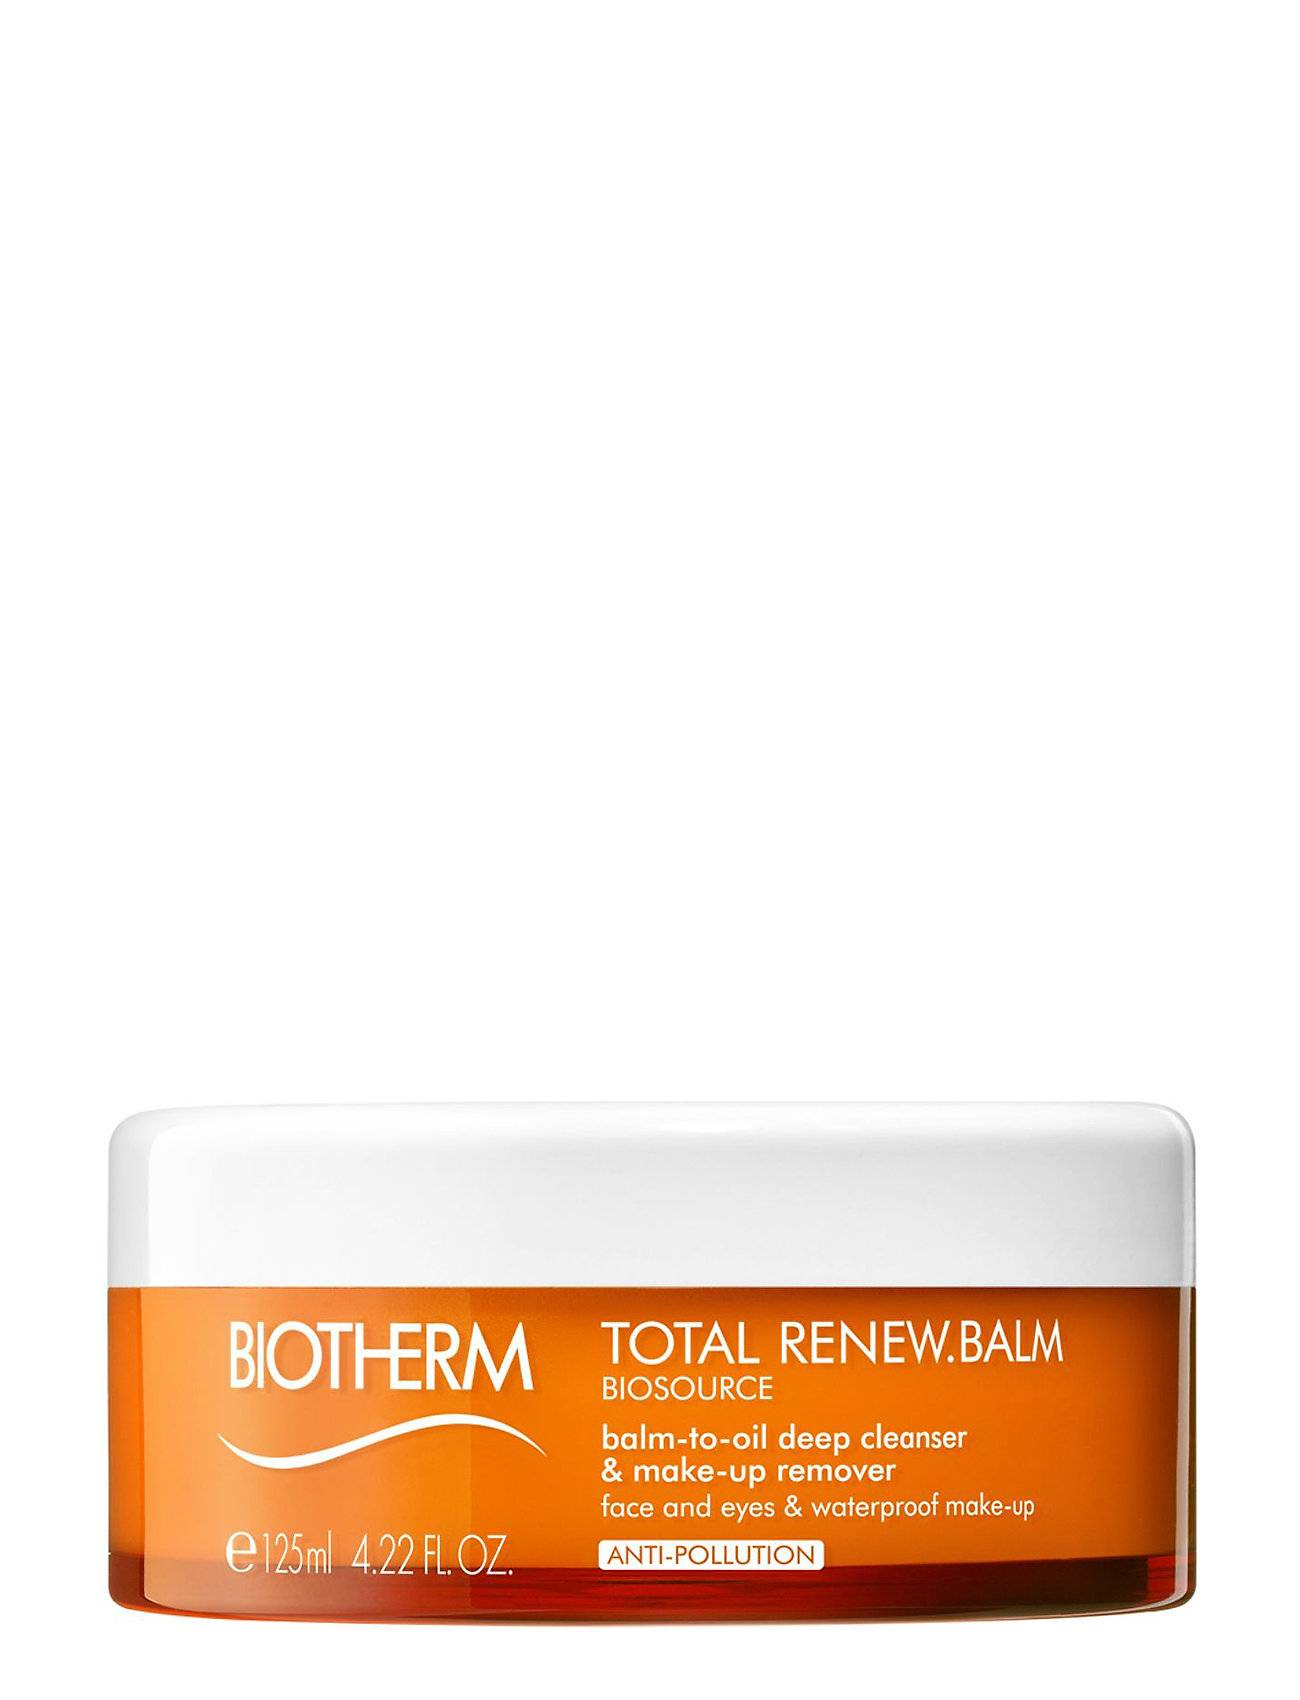 Biotherm Biosource Total Renew Balm-To-Oil Deep Cleanser & Makeup Rem